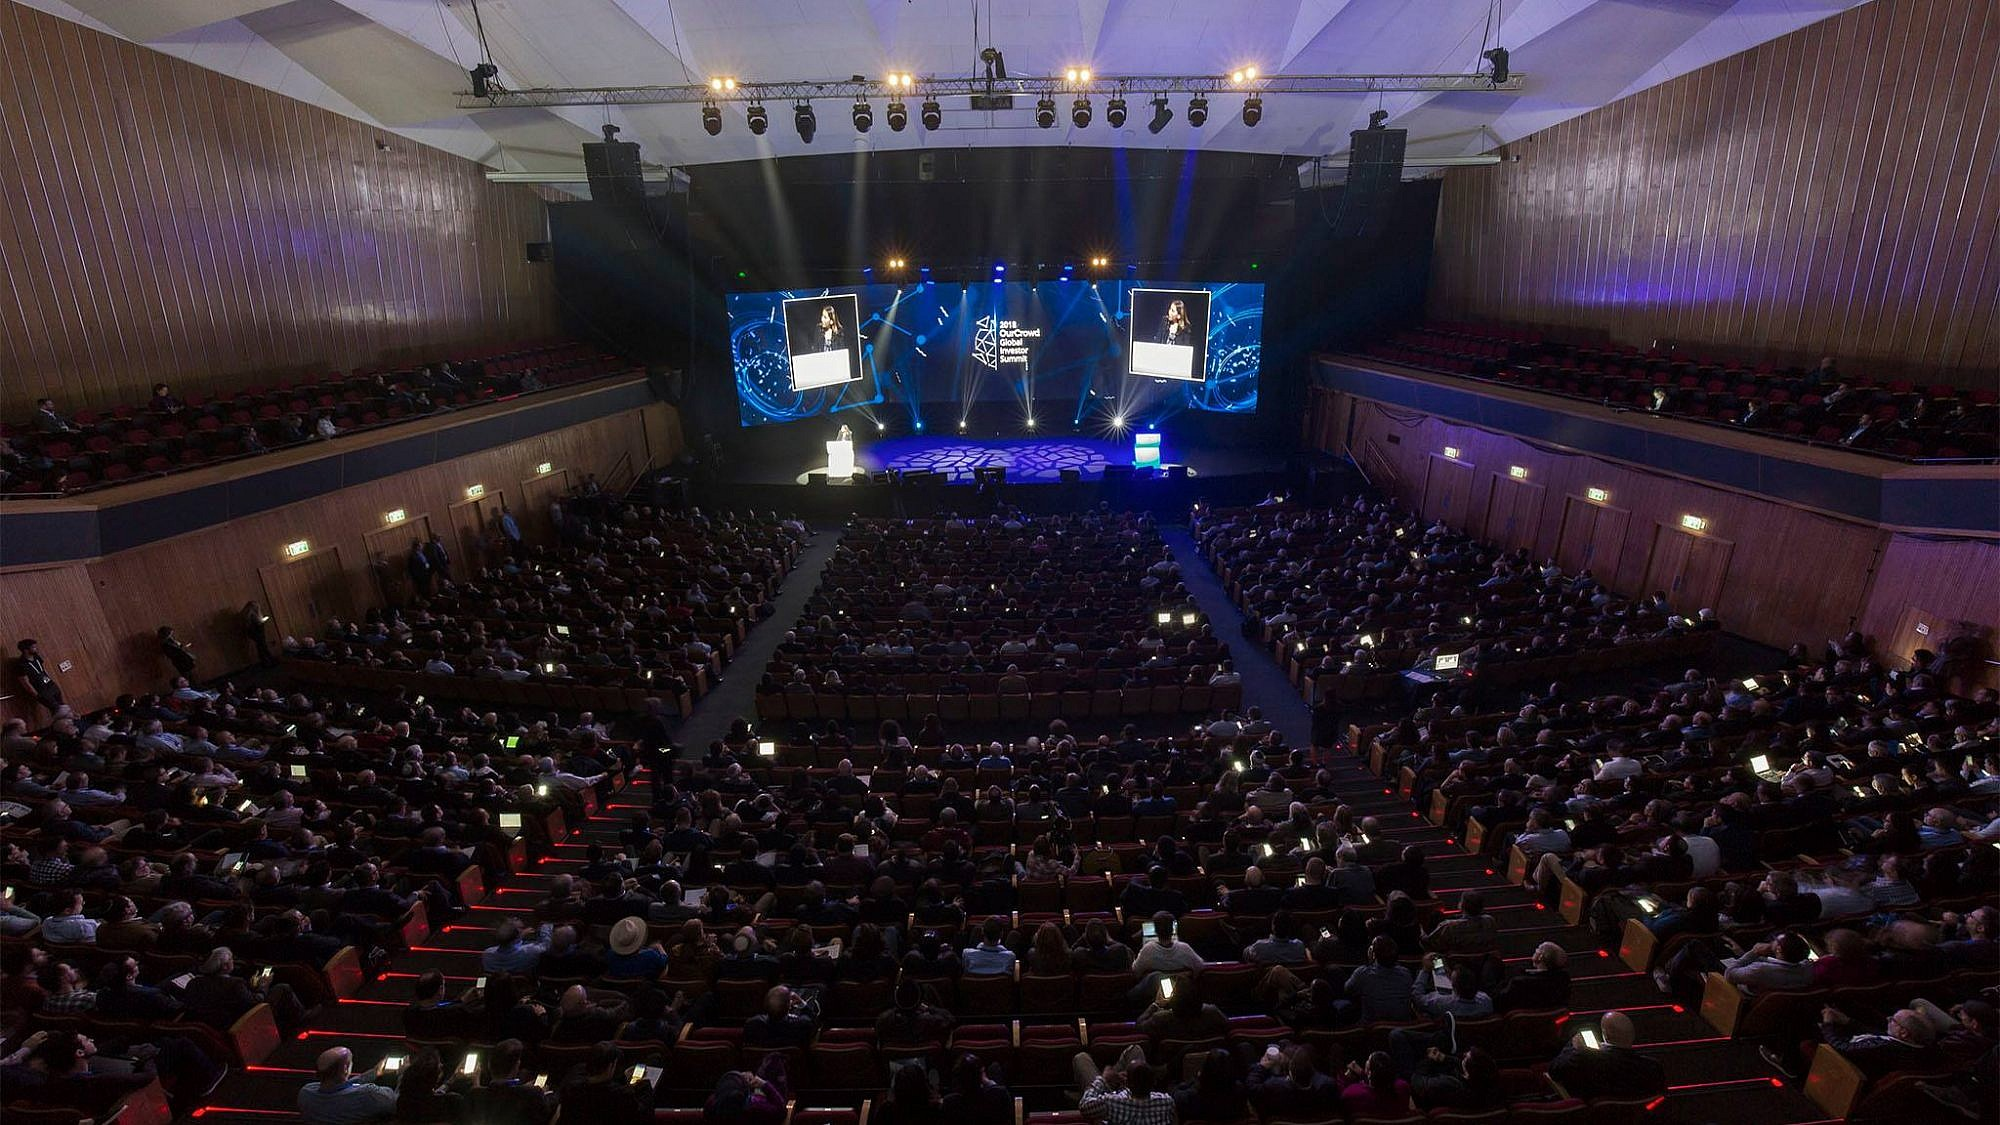 The 2018 OurCrowd Global Investor Summit in Jerusalem. Credit: Facebook.